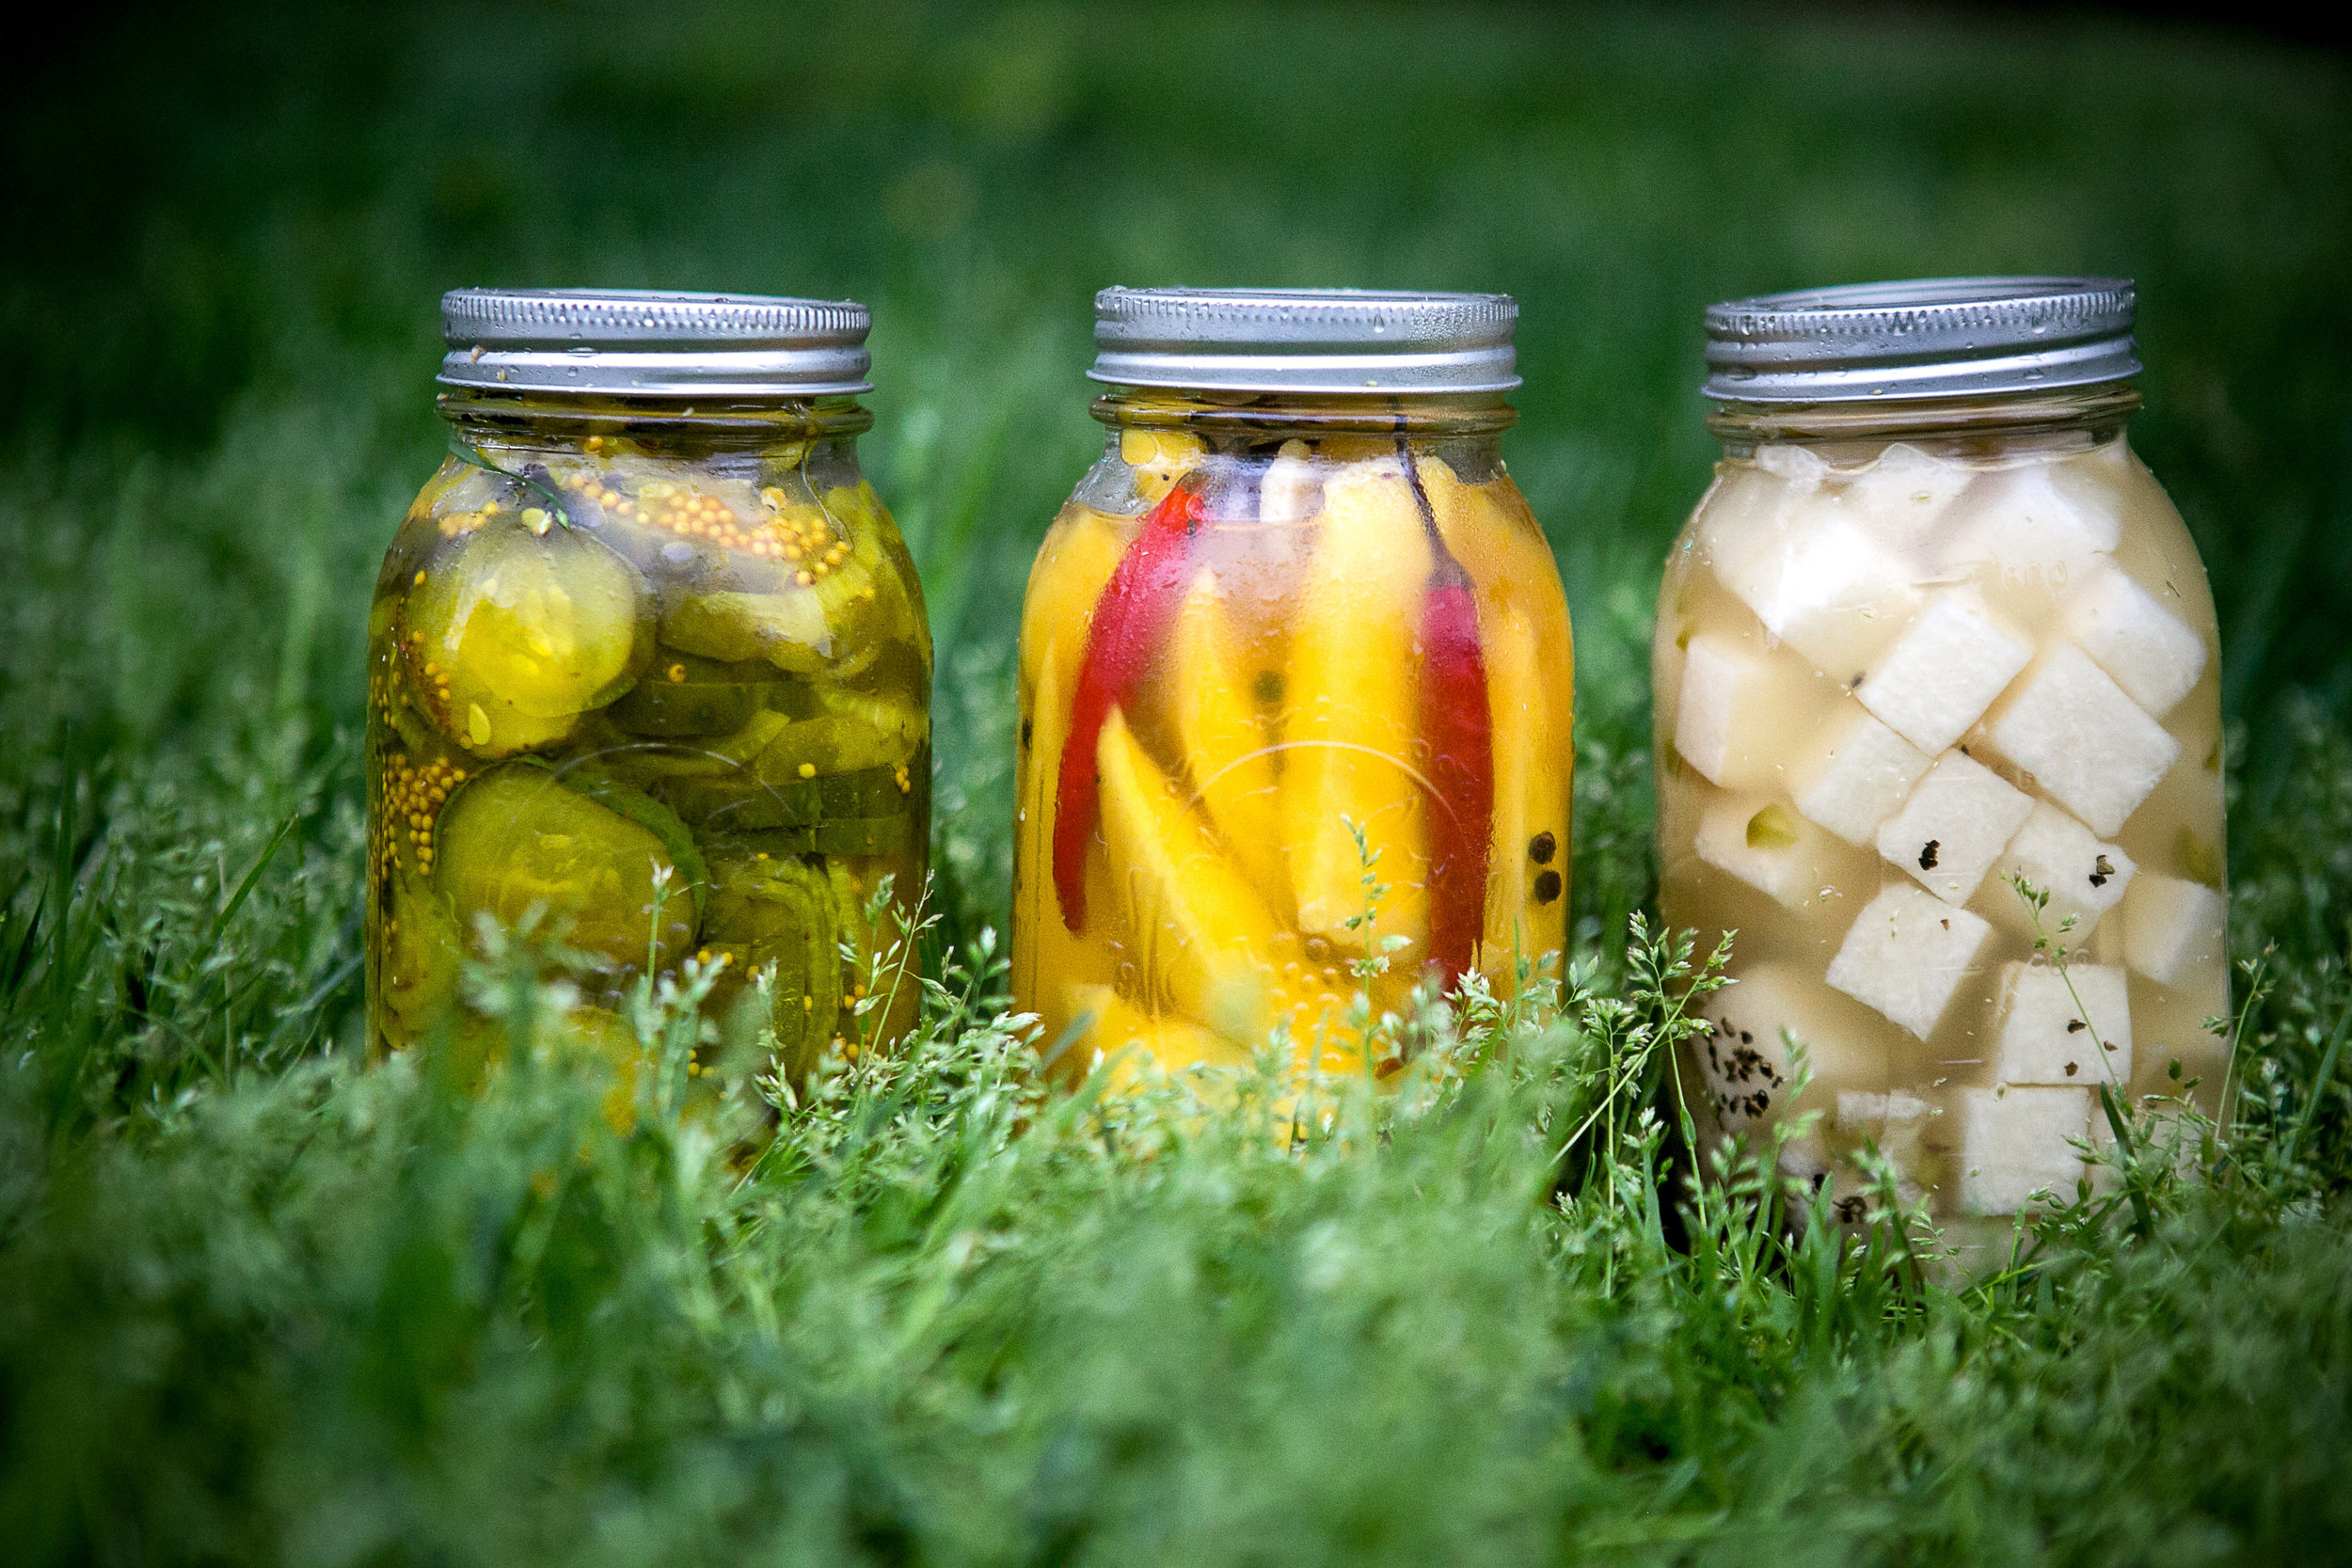 DIY Bread & Butter pickles, Pickled Mango and Pickled Jicama. Photo by Linda Wang.